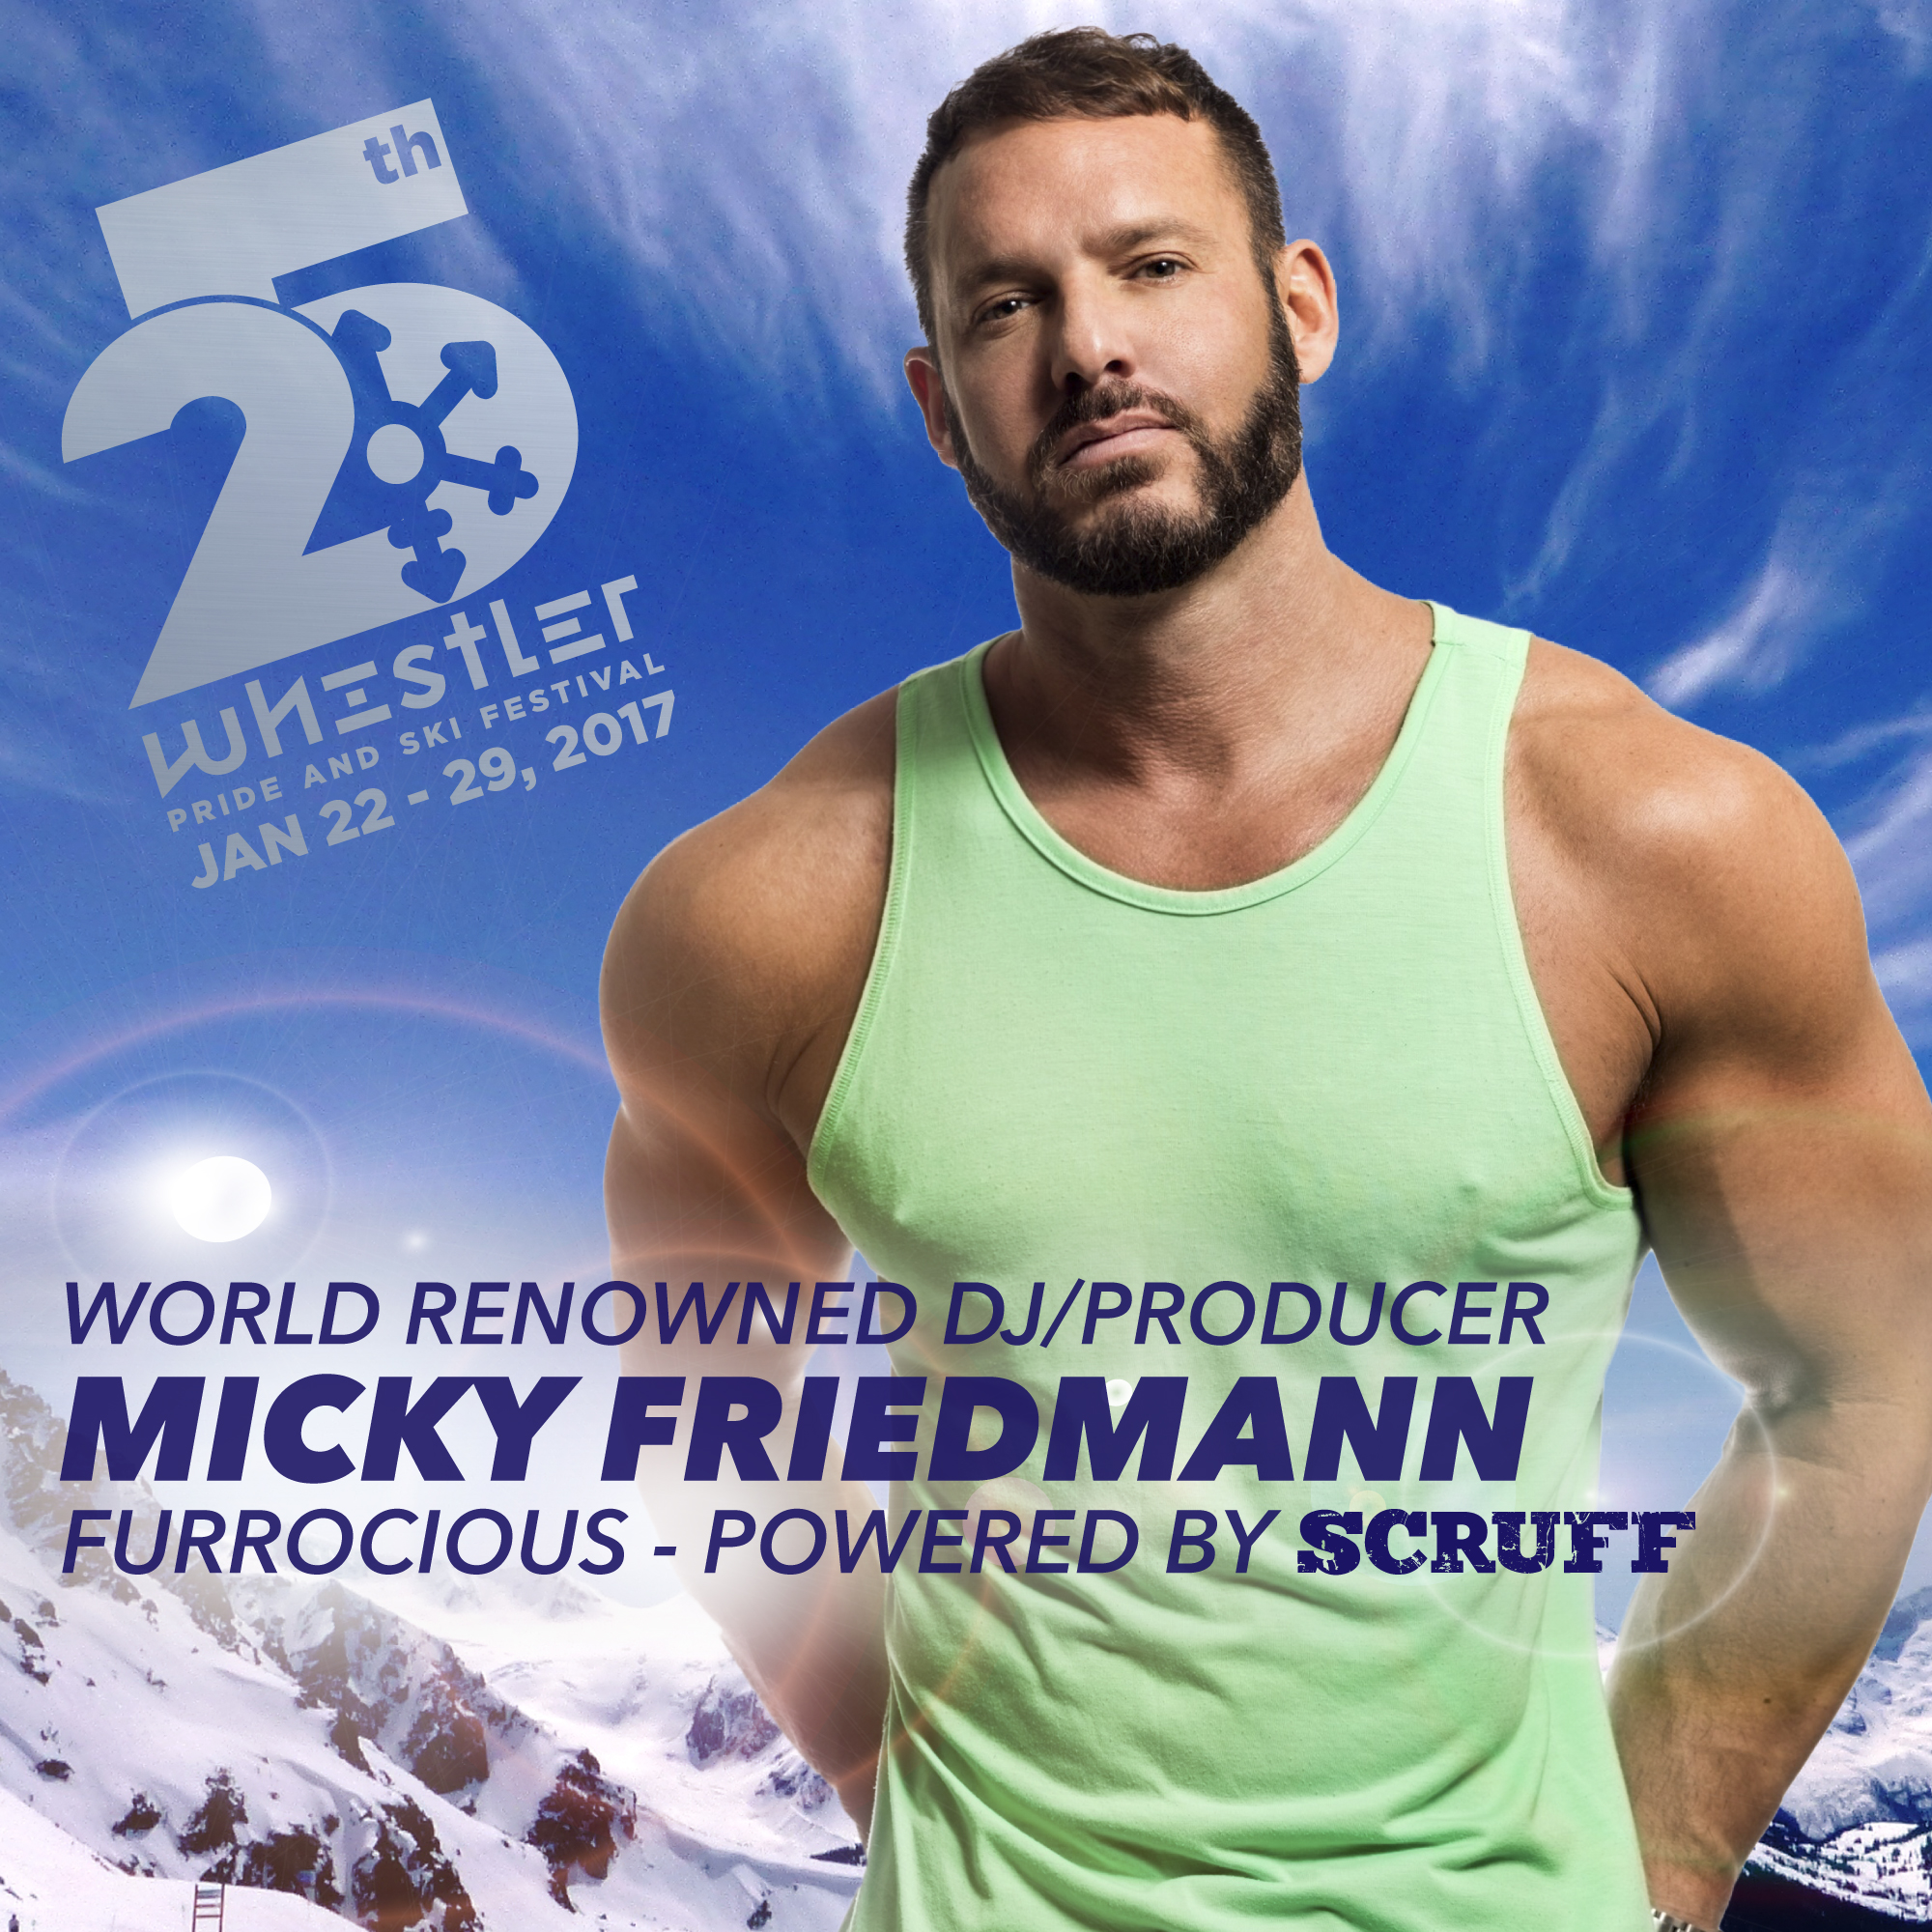 DJ Micky Friedmann at Furrocious Whistler Pride and Ski Festival